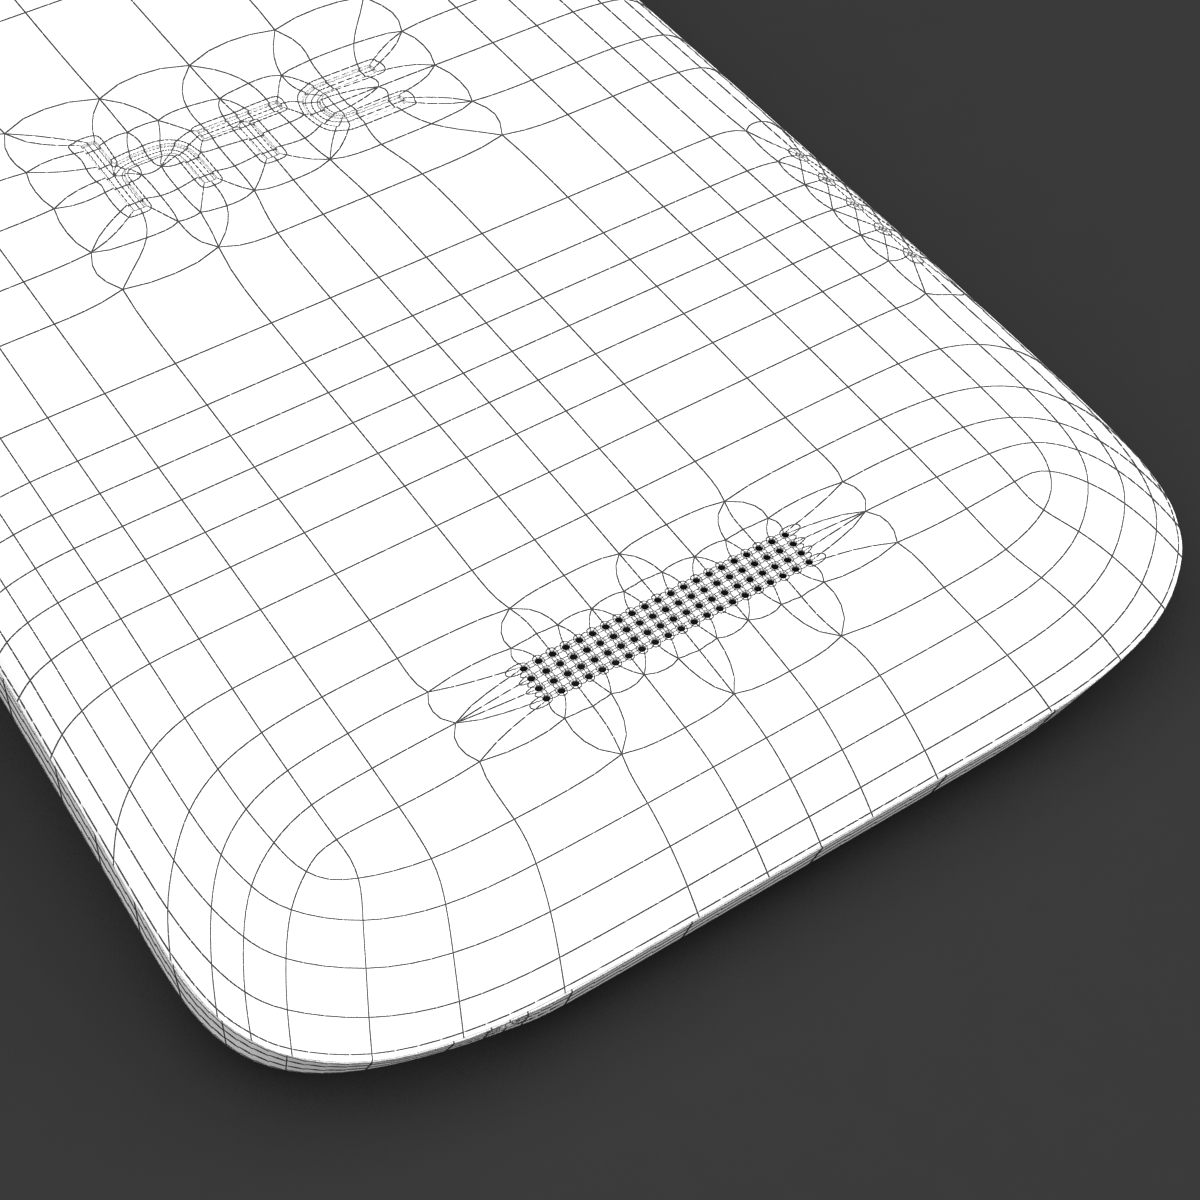 htc one x+ black and white 3d model 3ds max fbx c4d lwo obj 151479